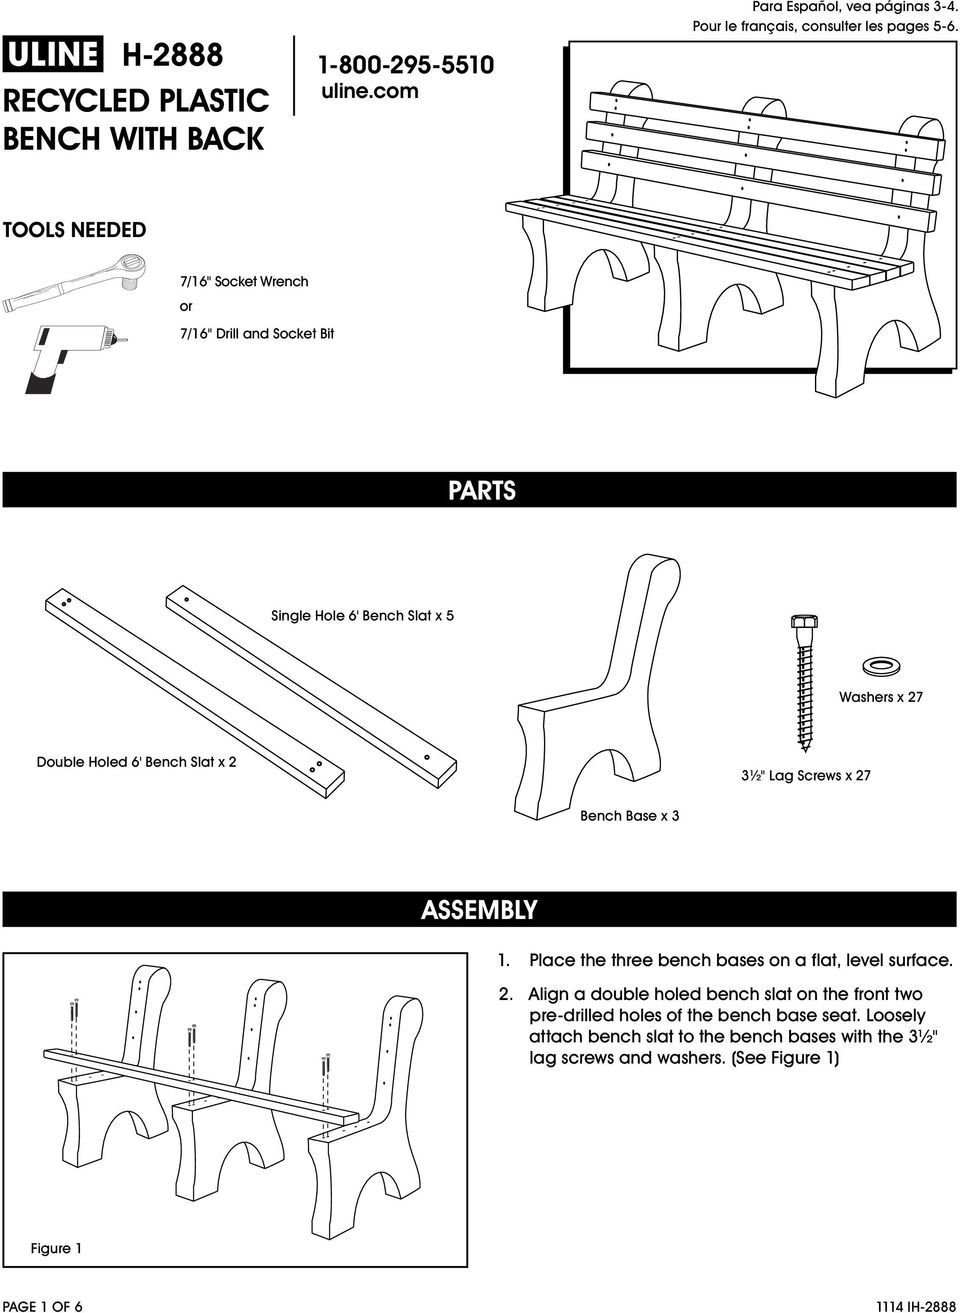 "2"" Lag Screws x 27 Bench Base x 3 ASSEMBLY 1. Place the three bench bases on a flat, level surface. 2. Align a double holed bench slat on the front two pre-drilled holes of the bench base seat."